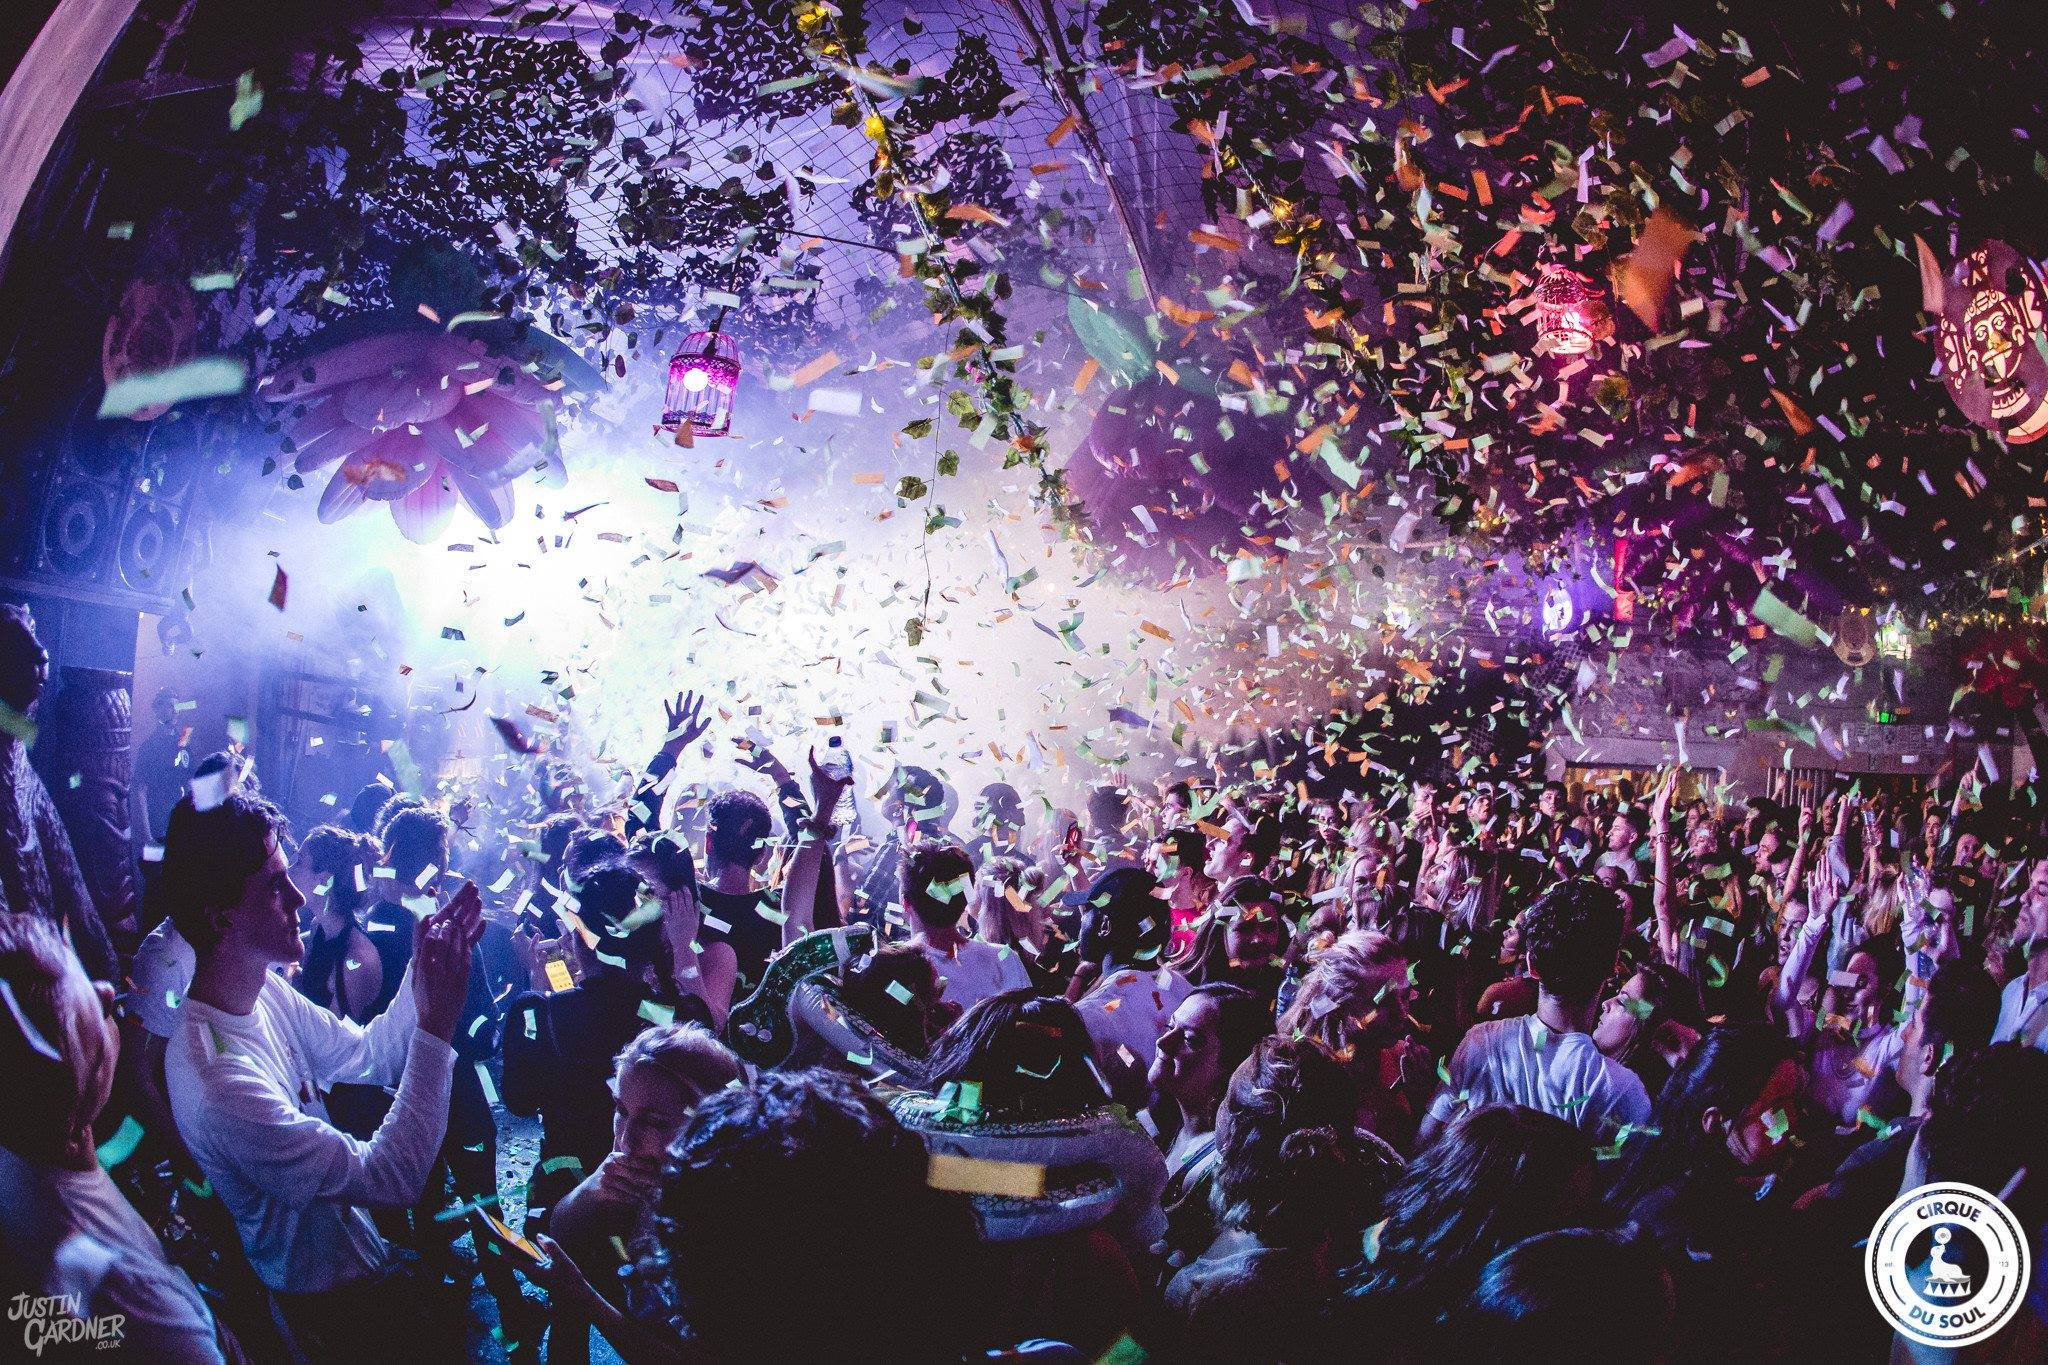 Guide to Newcastle, featuring an image of people on the dance floor at Digital with confetti falling down on them